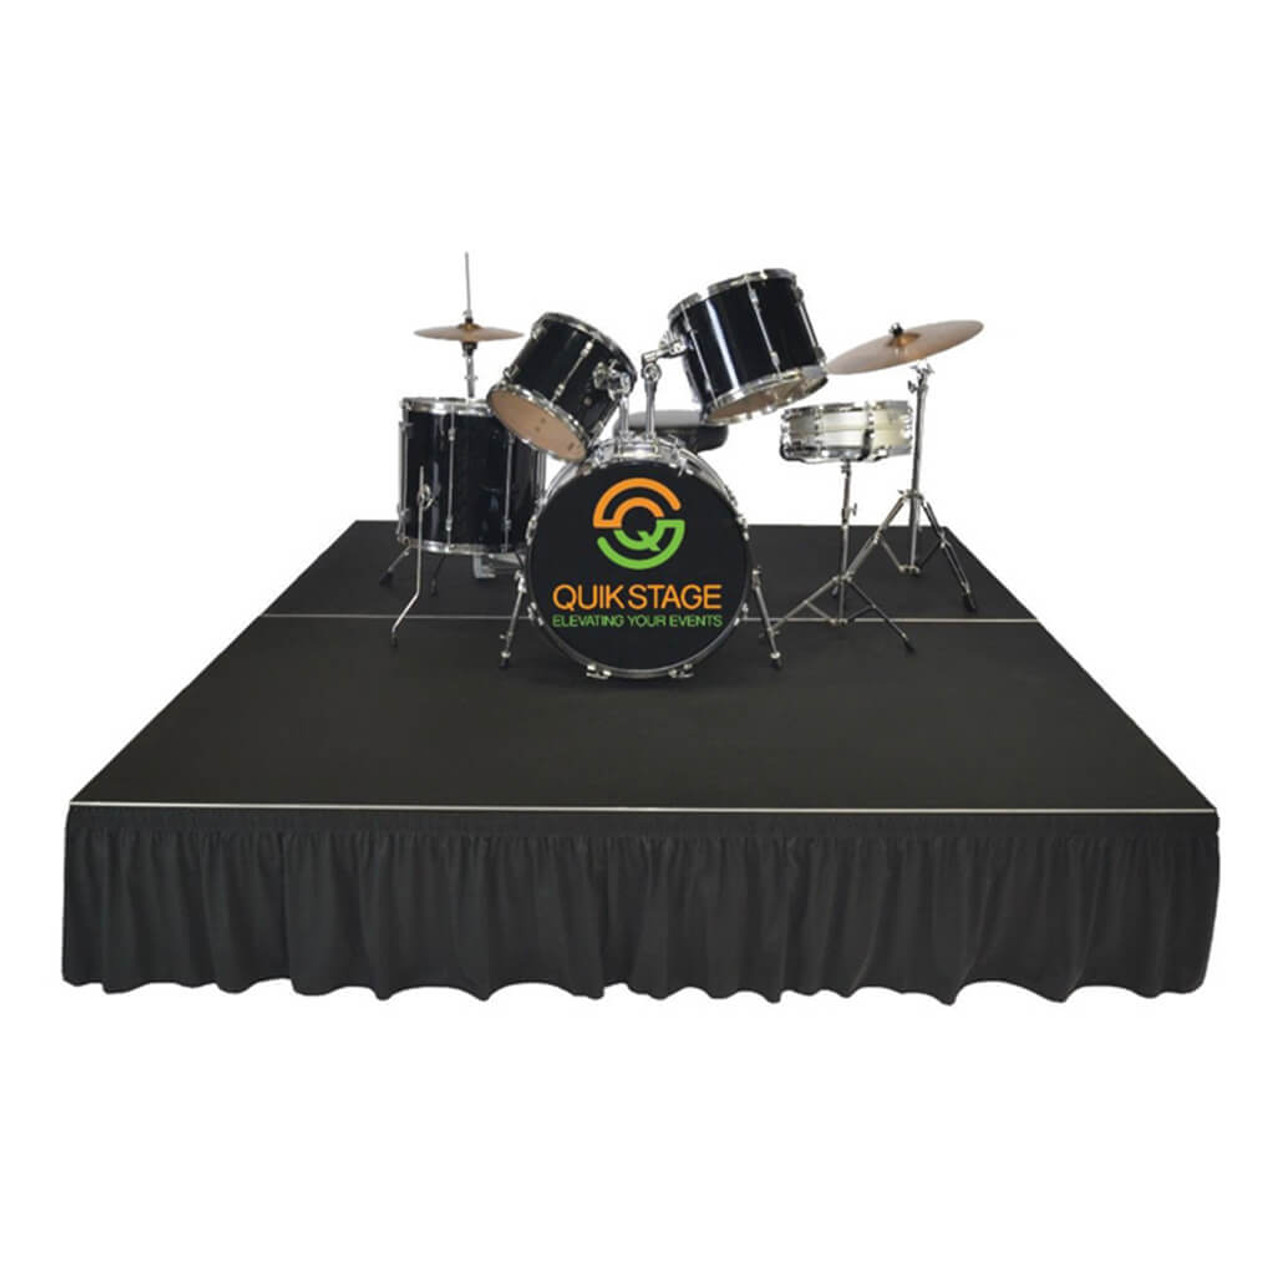 Top reviewed Quik Stage 8' x 16' High Portable Stage Package with Black Polyvinyl Non-Skid Surface. Additional Heights and Surfaces Available - Drum Riser with skirting